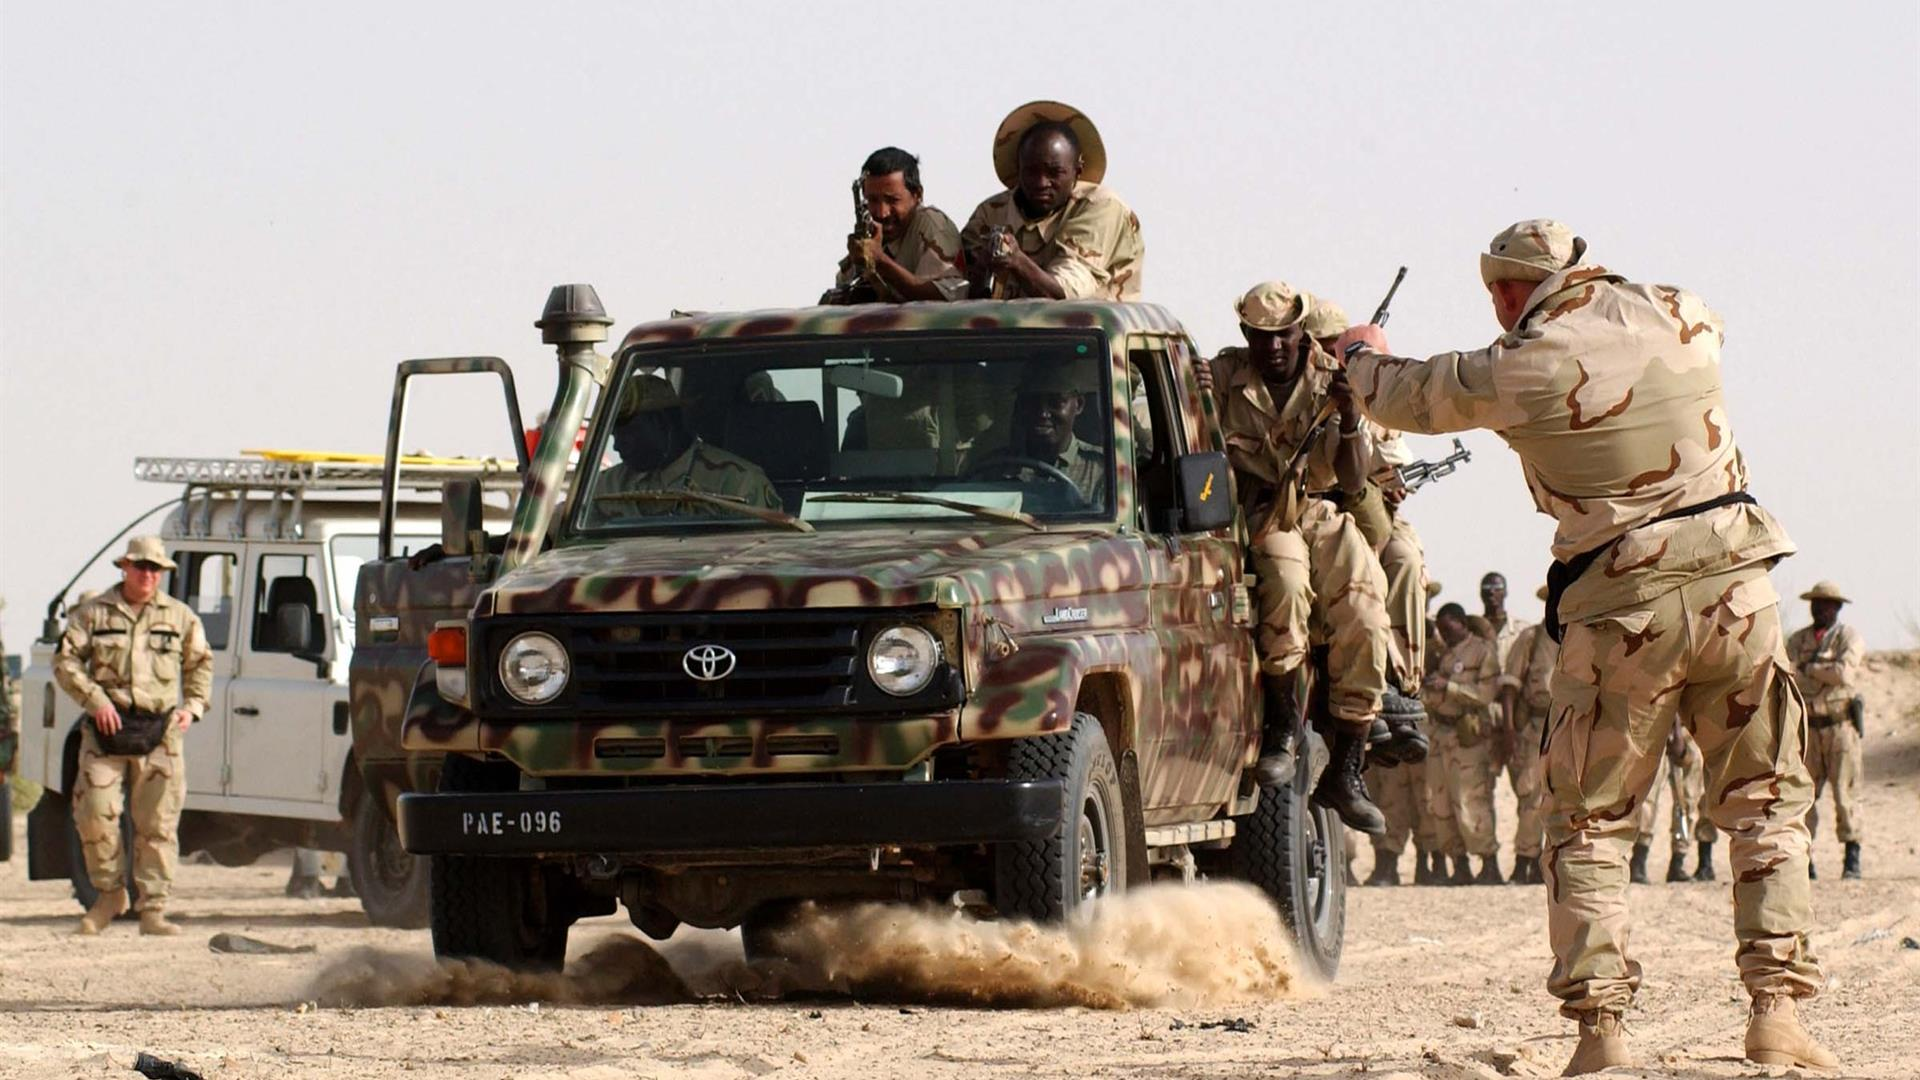 10Th SFG With Mali Soldiers